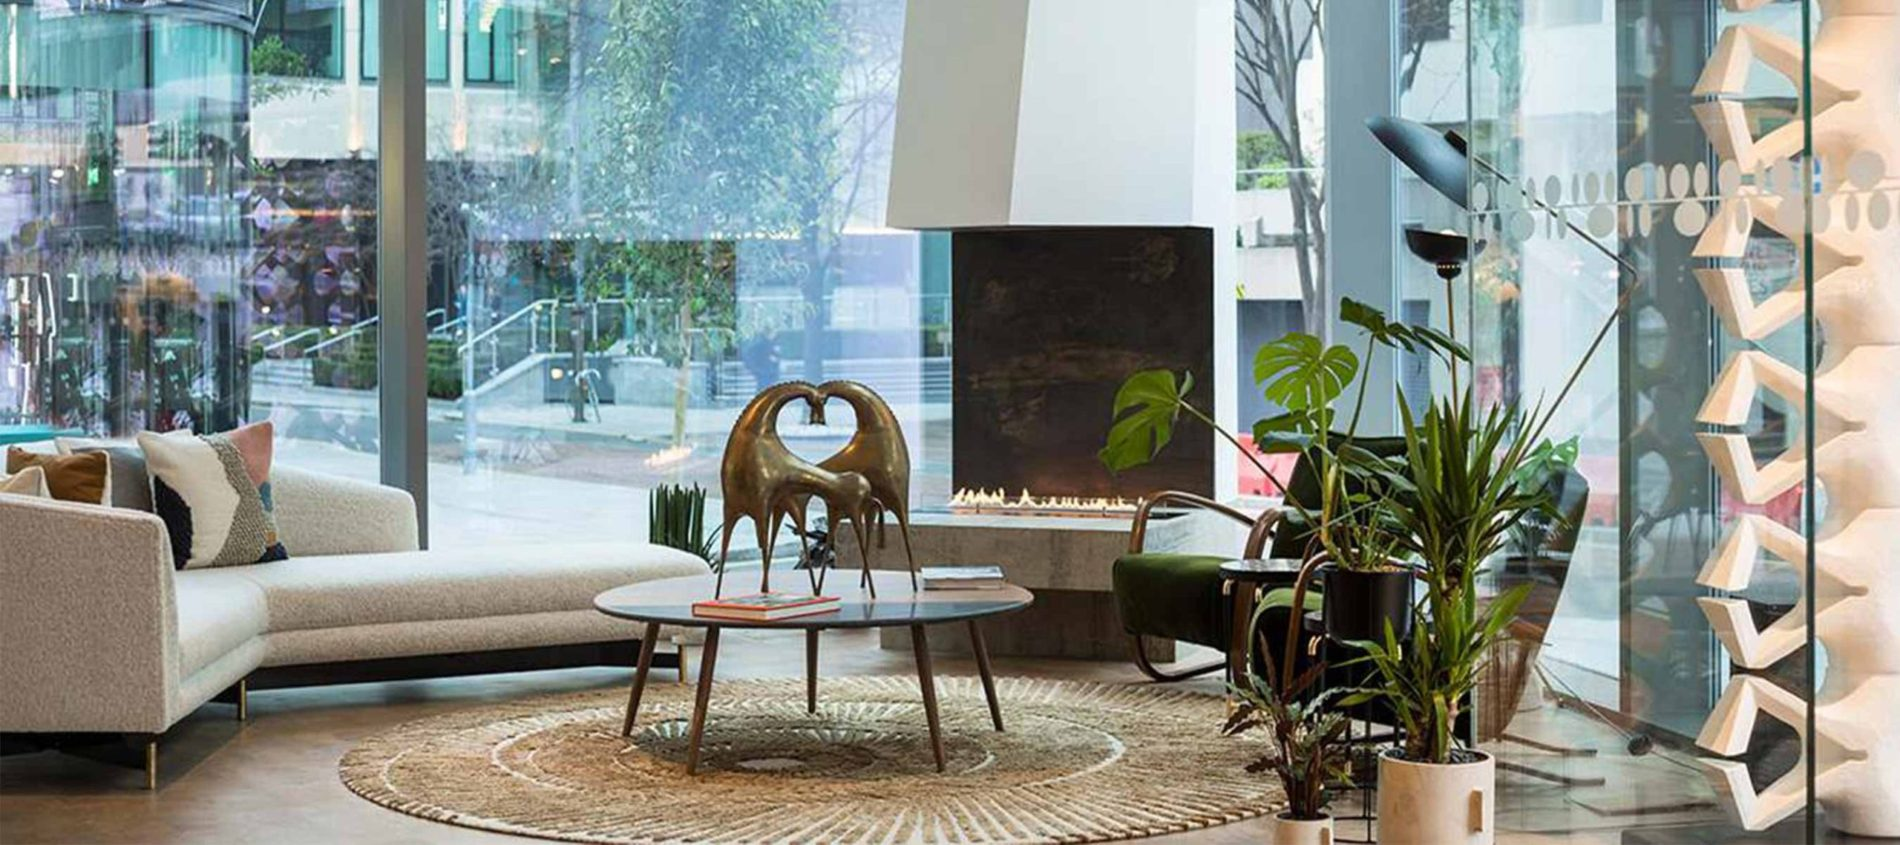 Modern lobby with sculptures, white L shape sofa and coffee table